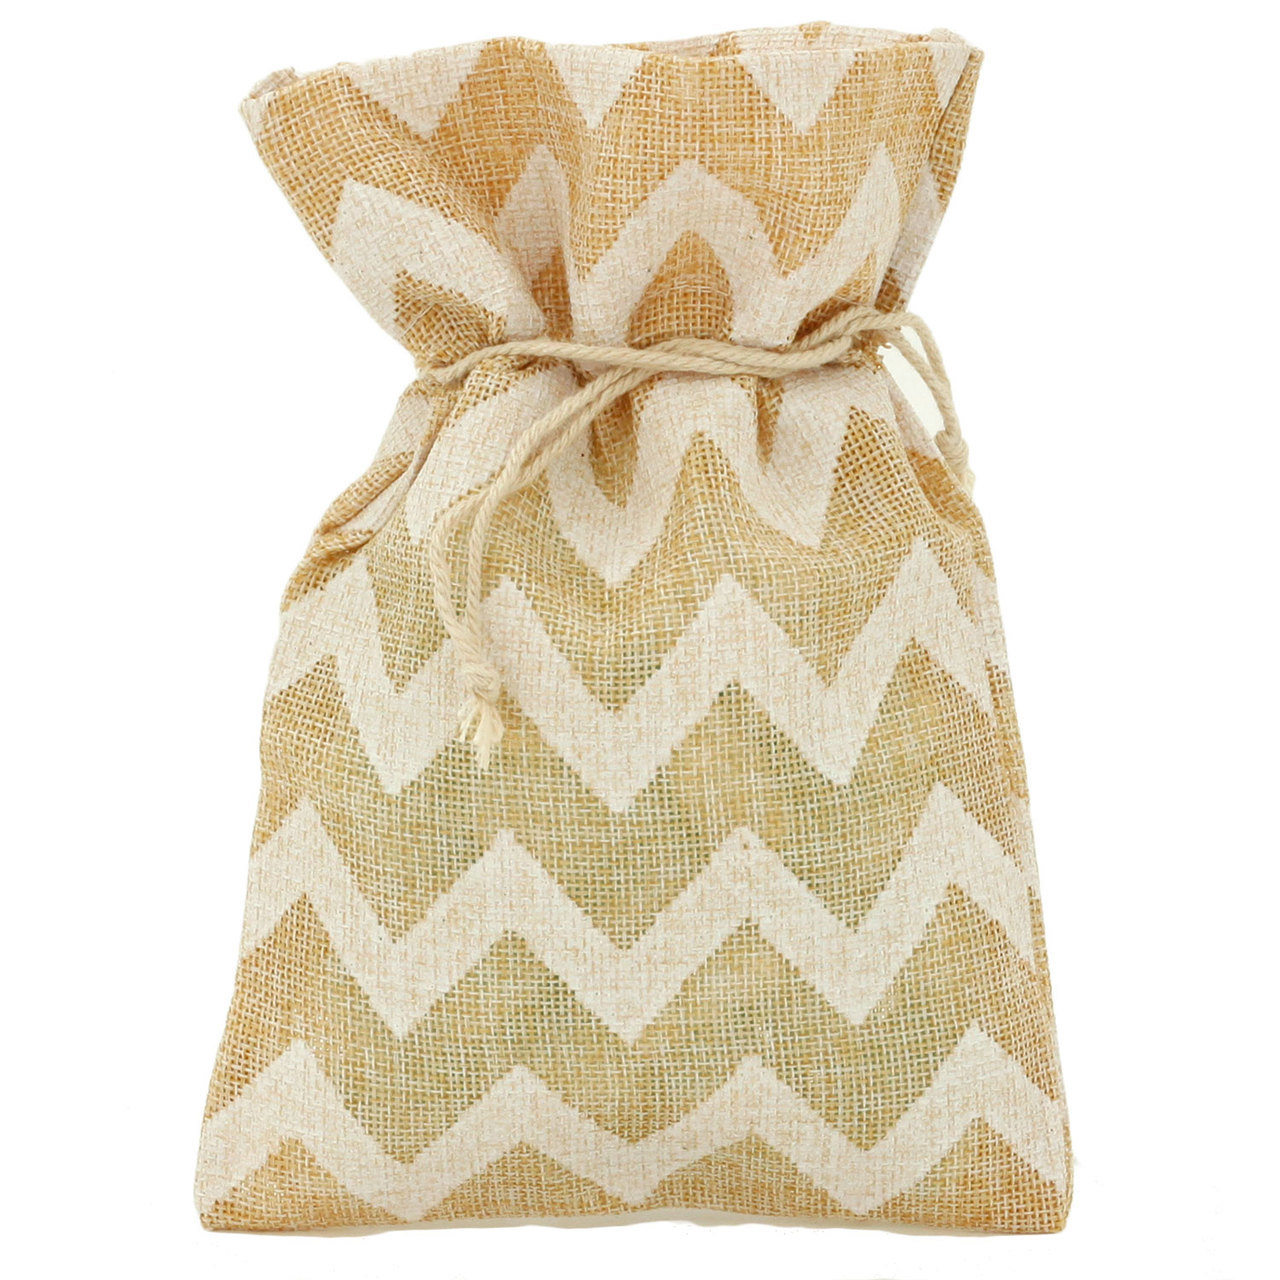 20 Burlap Chevron Style Cute Gift Party Favor Fabric Birthday Treat Goody Bag - Beige/White